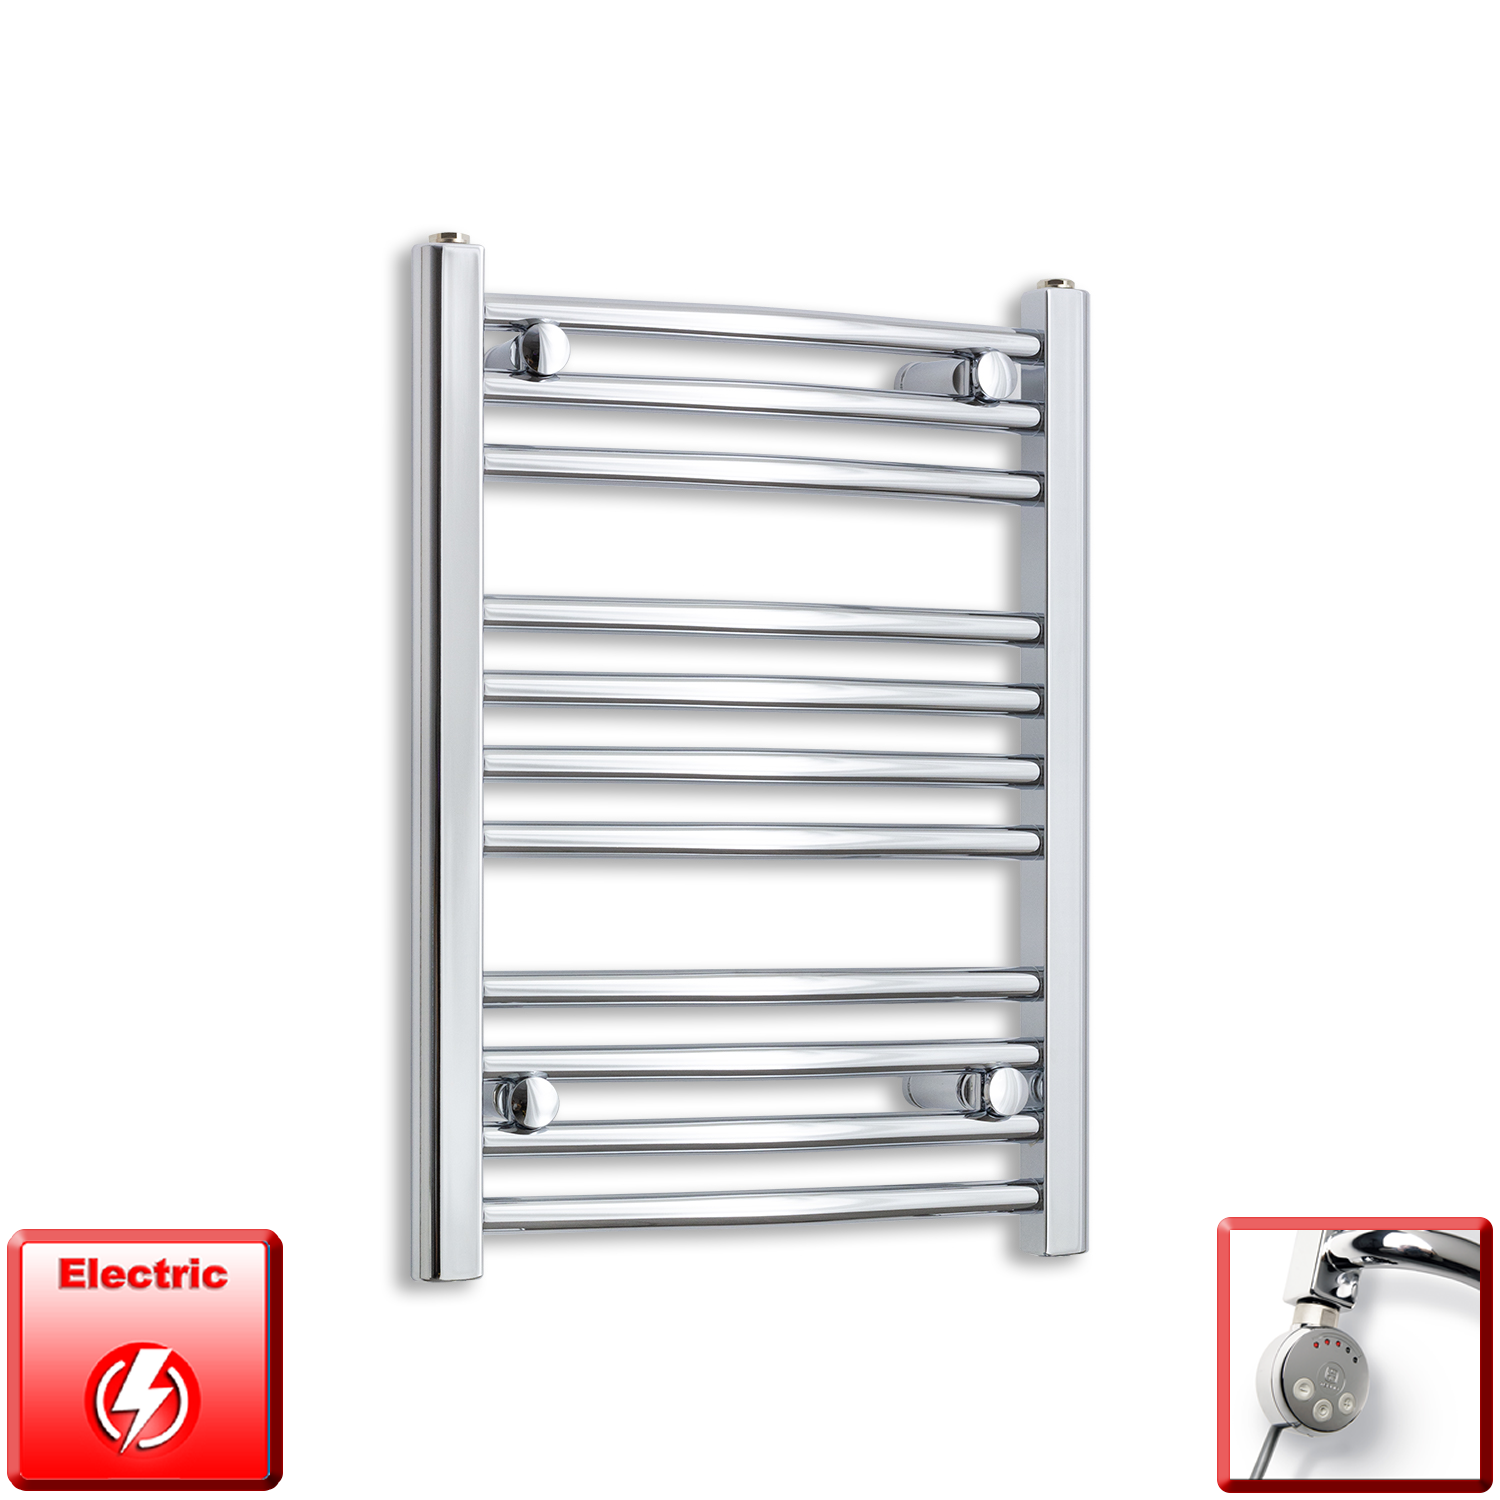 500mm Wide 600mm High Flat Or Curved Chrome Pre-Filled Electric Heated Towel Rail Radiator HTR,MEG Thermostatic Element / Straight